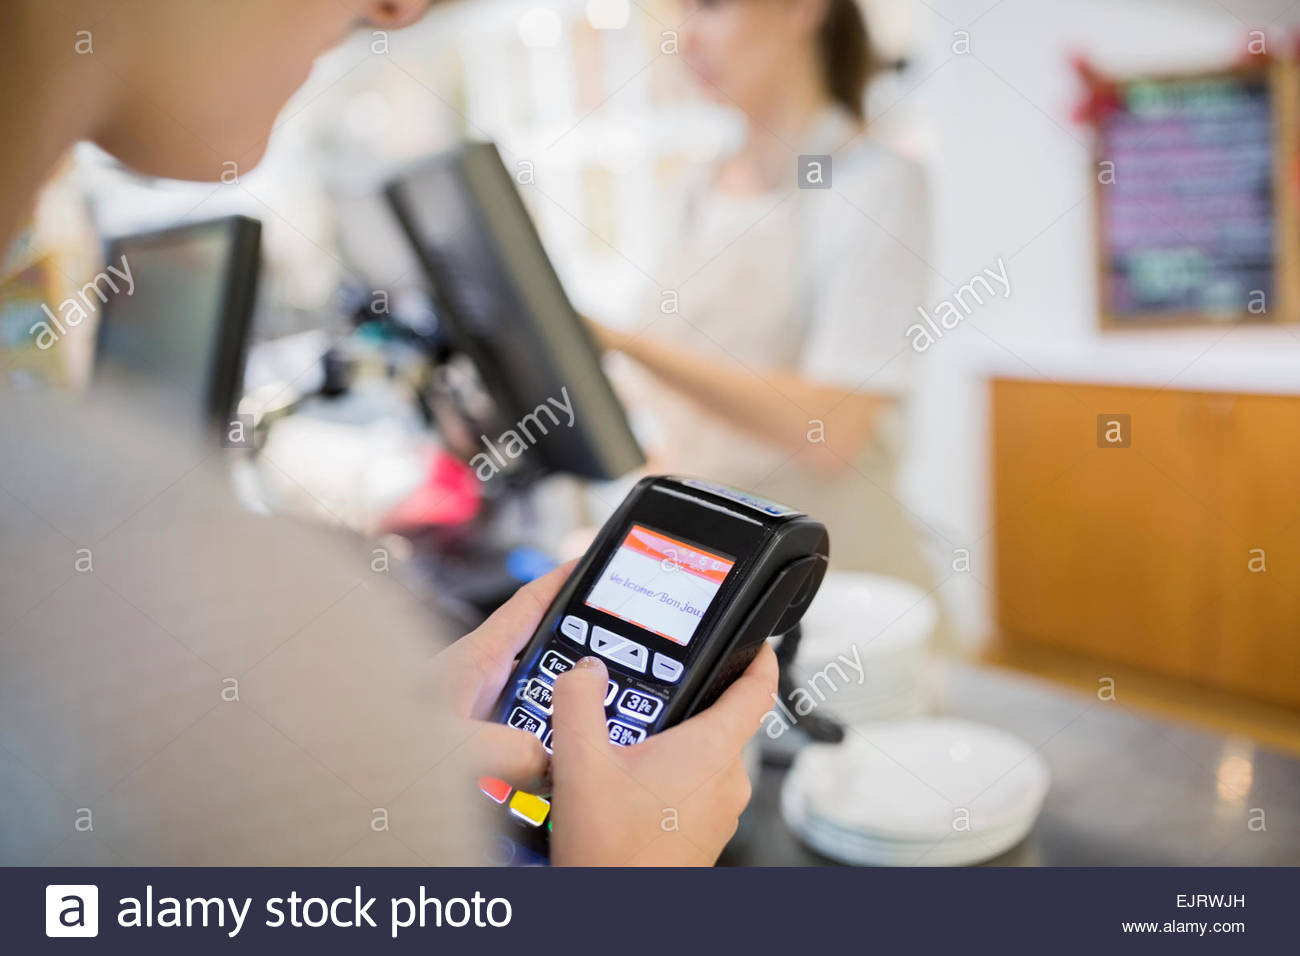 Woman using credit card reader in cafe Stock Photo